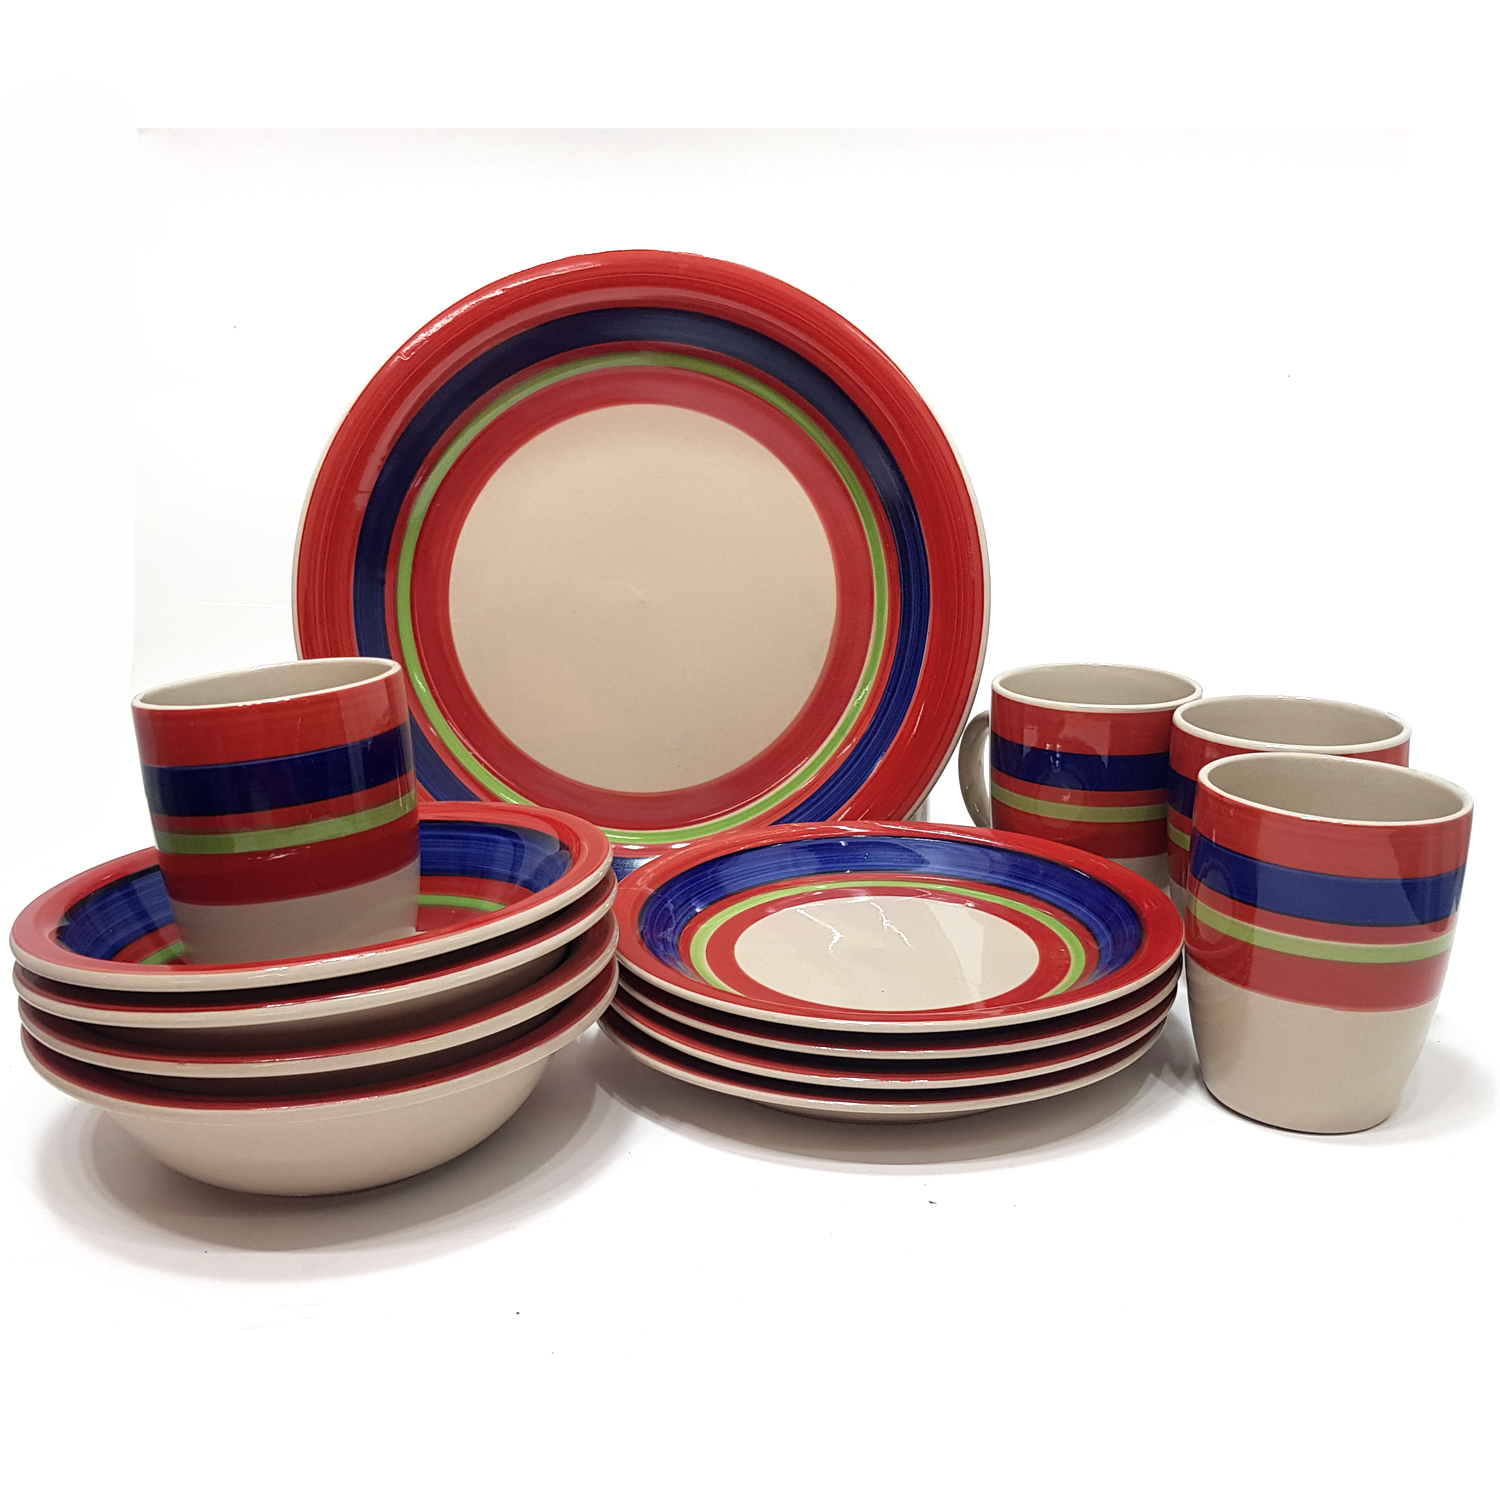 16pcs Decal Porcelain Dinner Set #31909001024